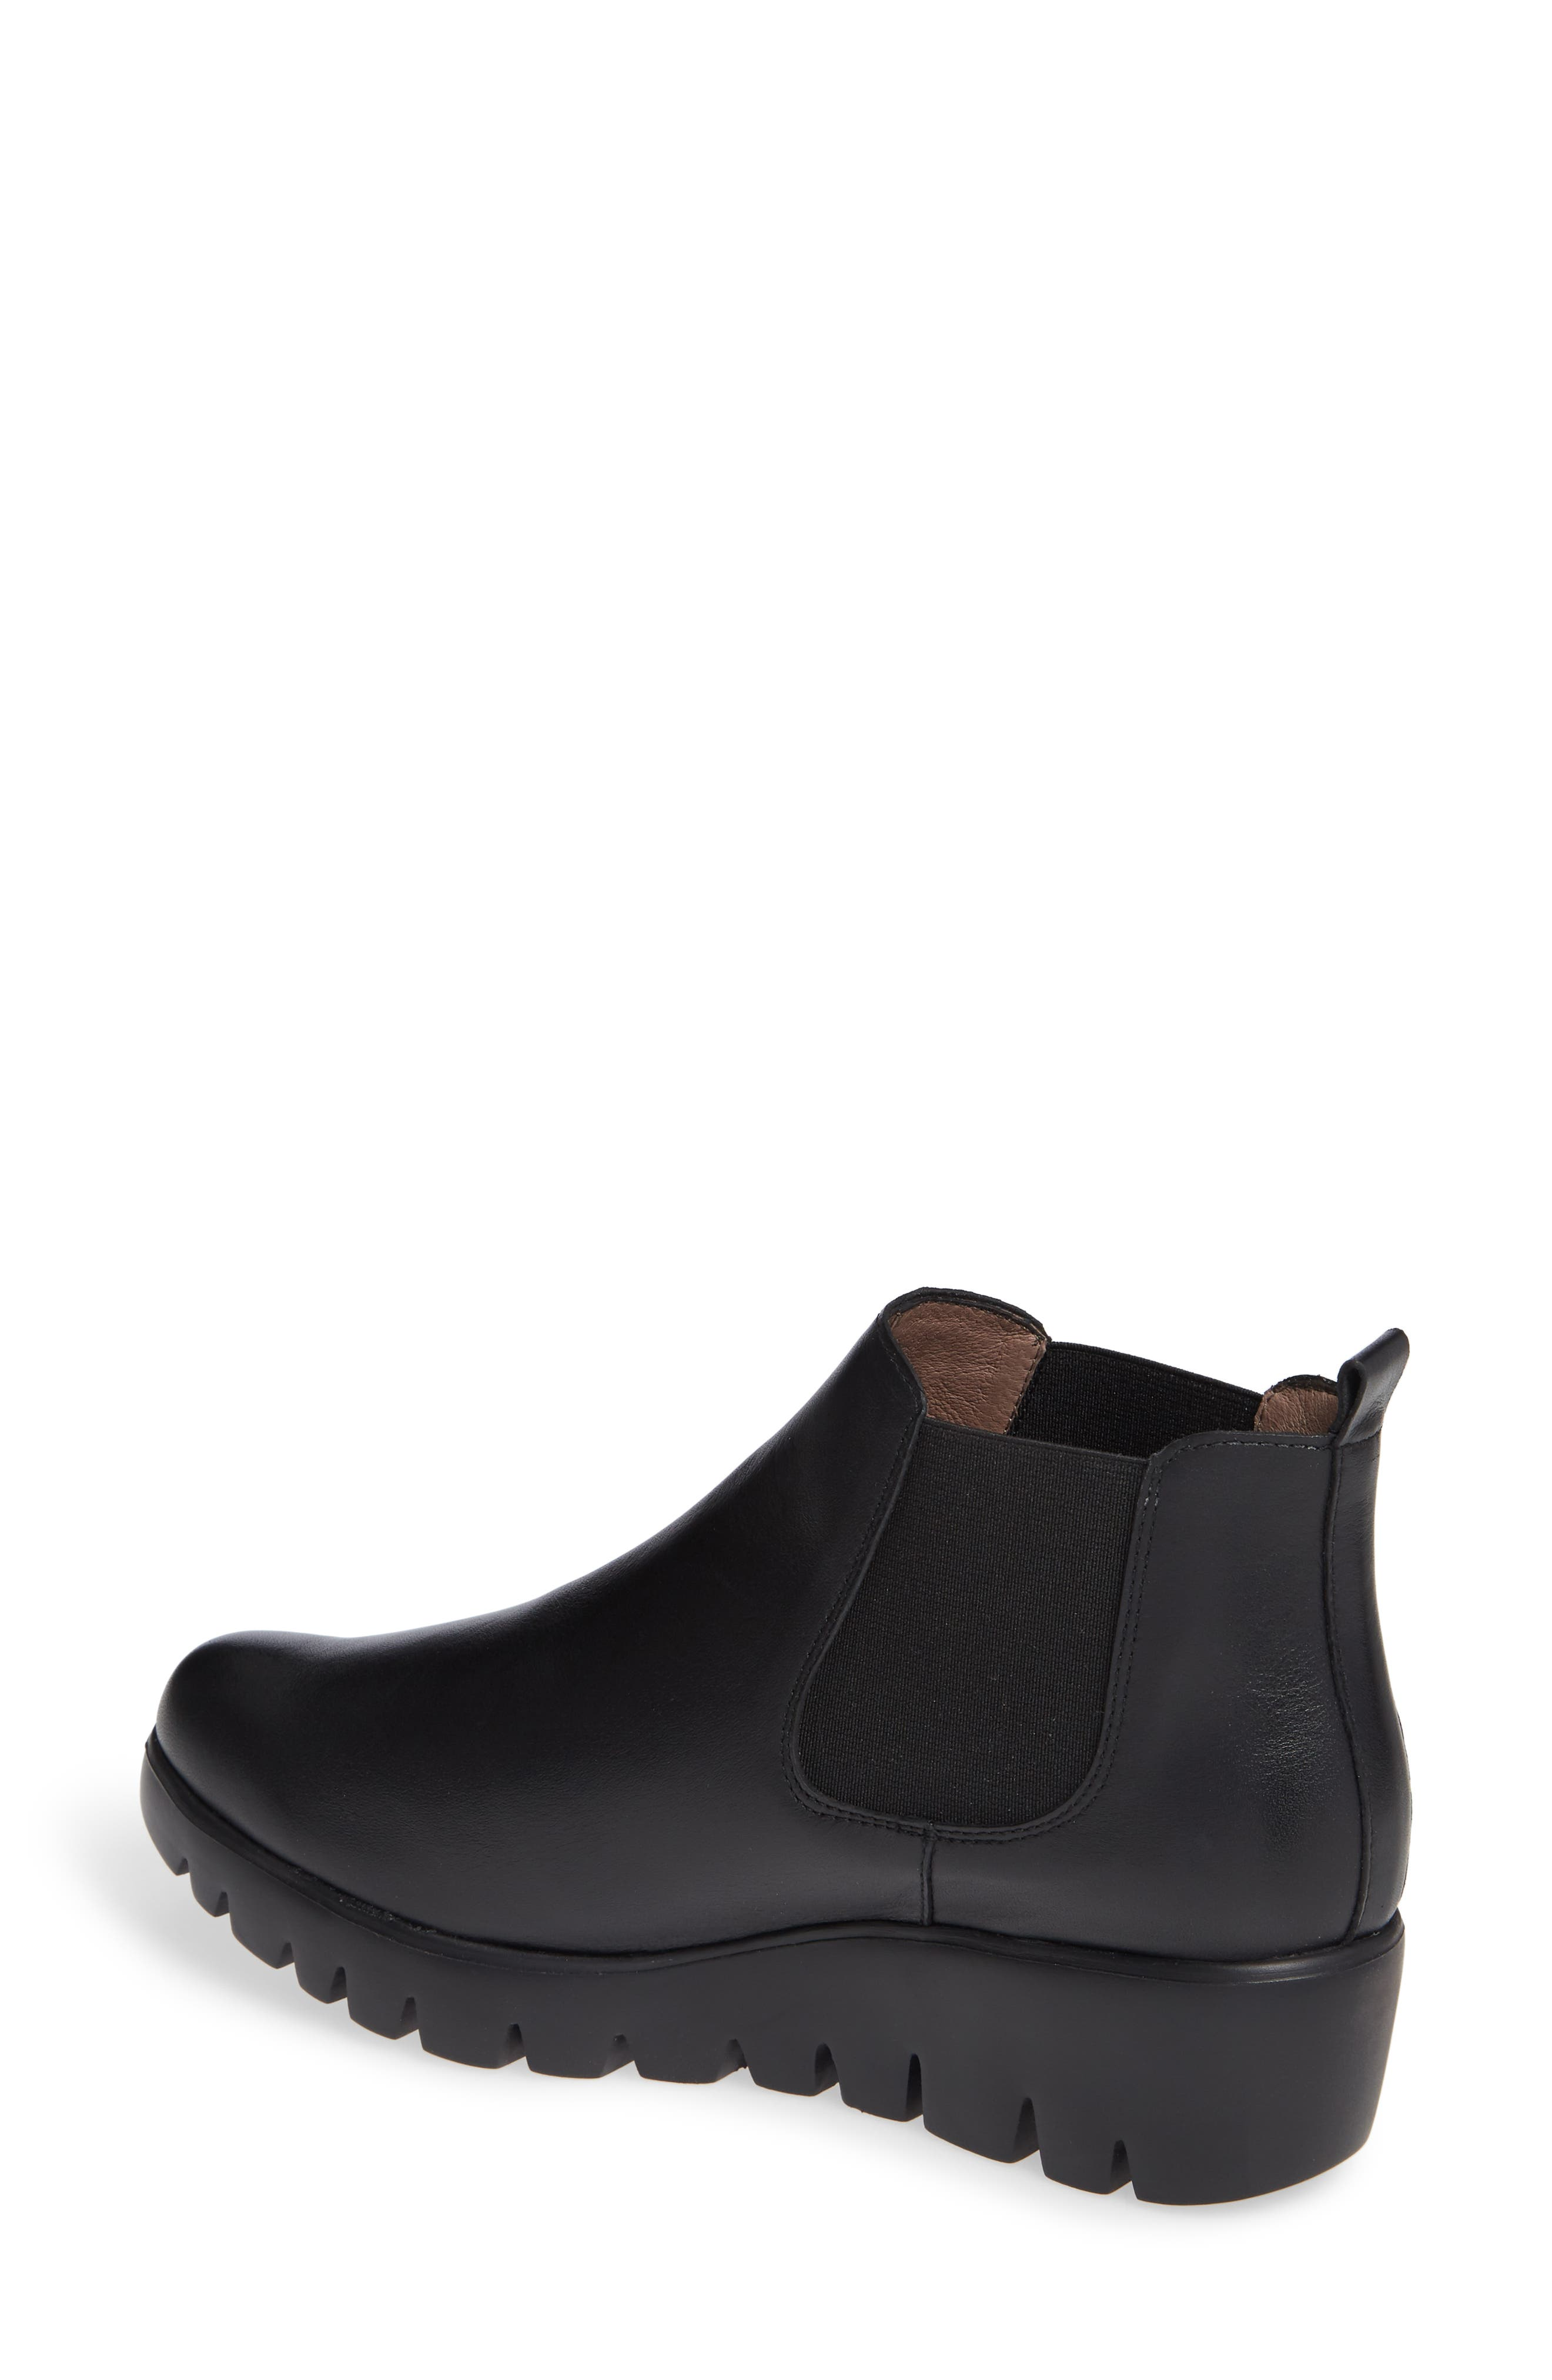 Slip-On Chelsea Boot,                             Alternate thumbnail 2, color,                             BLACK SMOOTH LEATHER